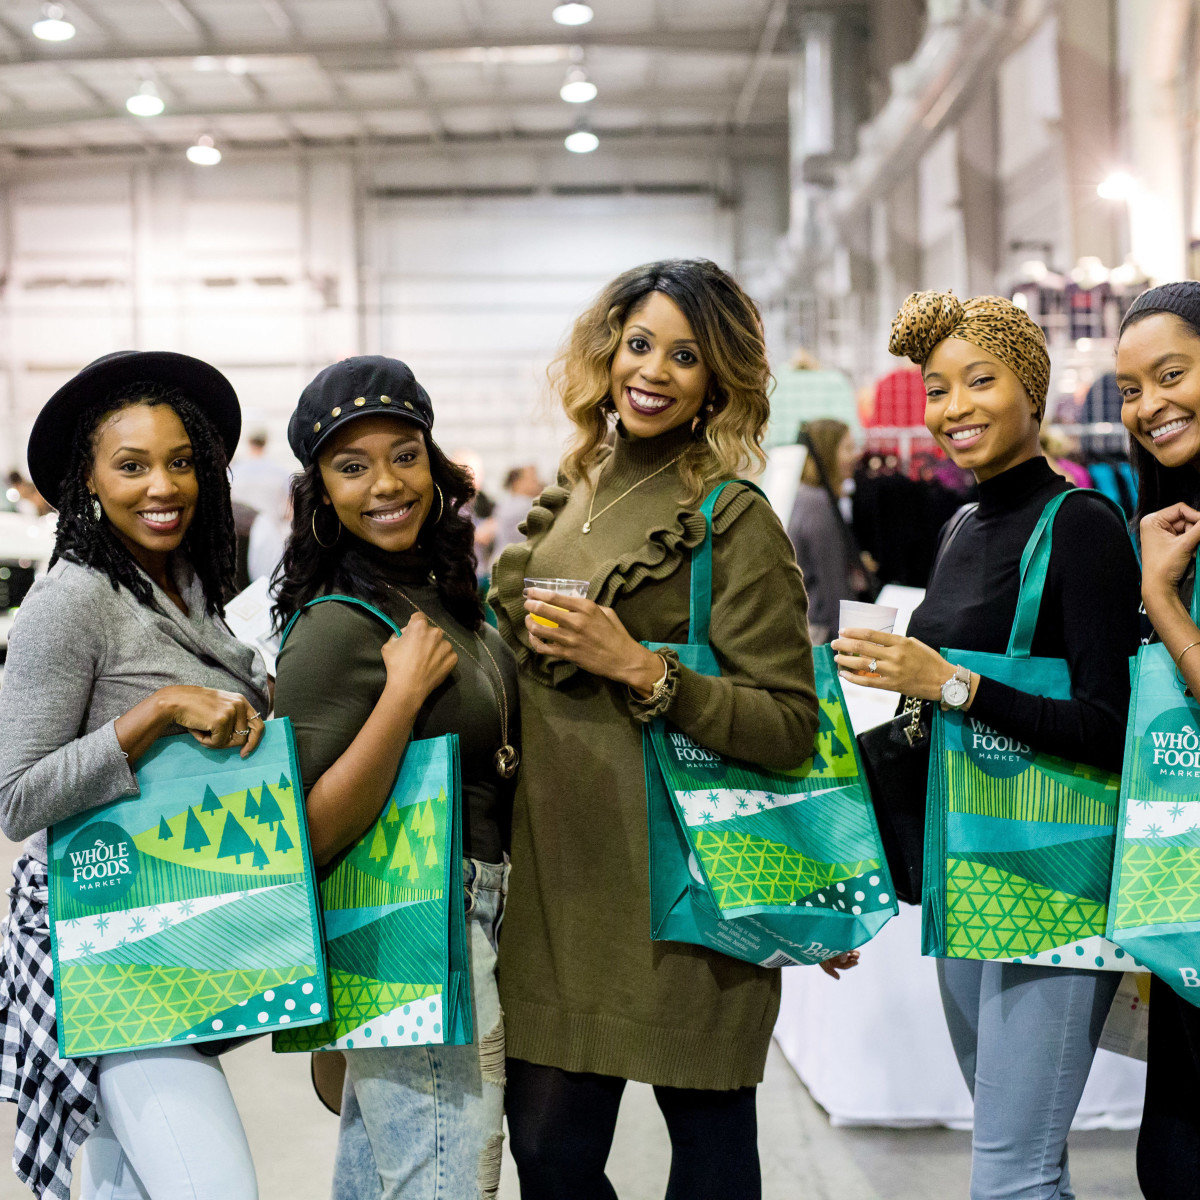 Houston, CultureMap Holiday Pop-Up Shop, November 2017, Jasmine Haynes, Deneige Broom, Creshema Murray, Ebony Fondren, Cindy Carter